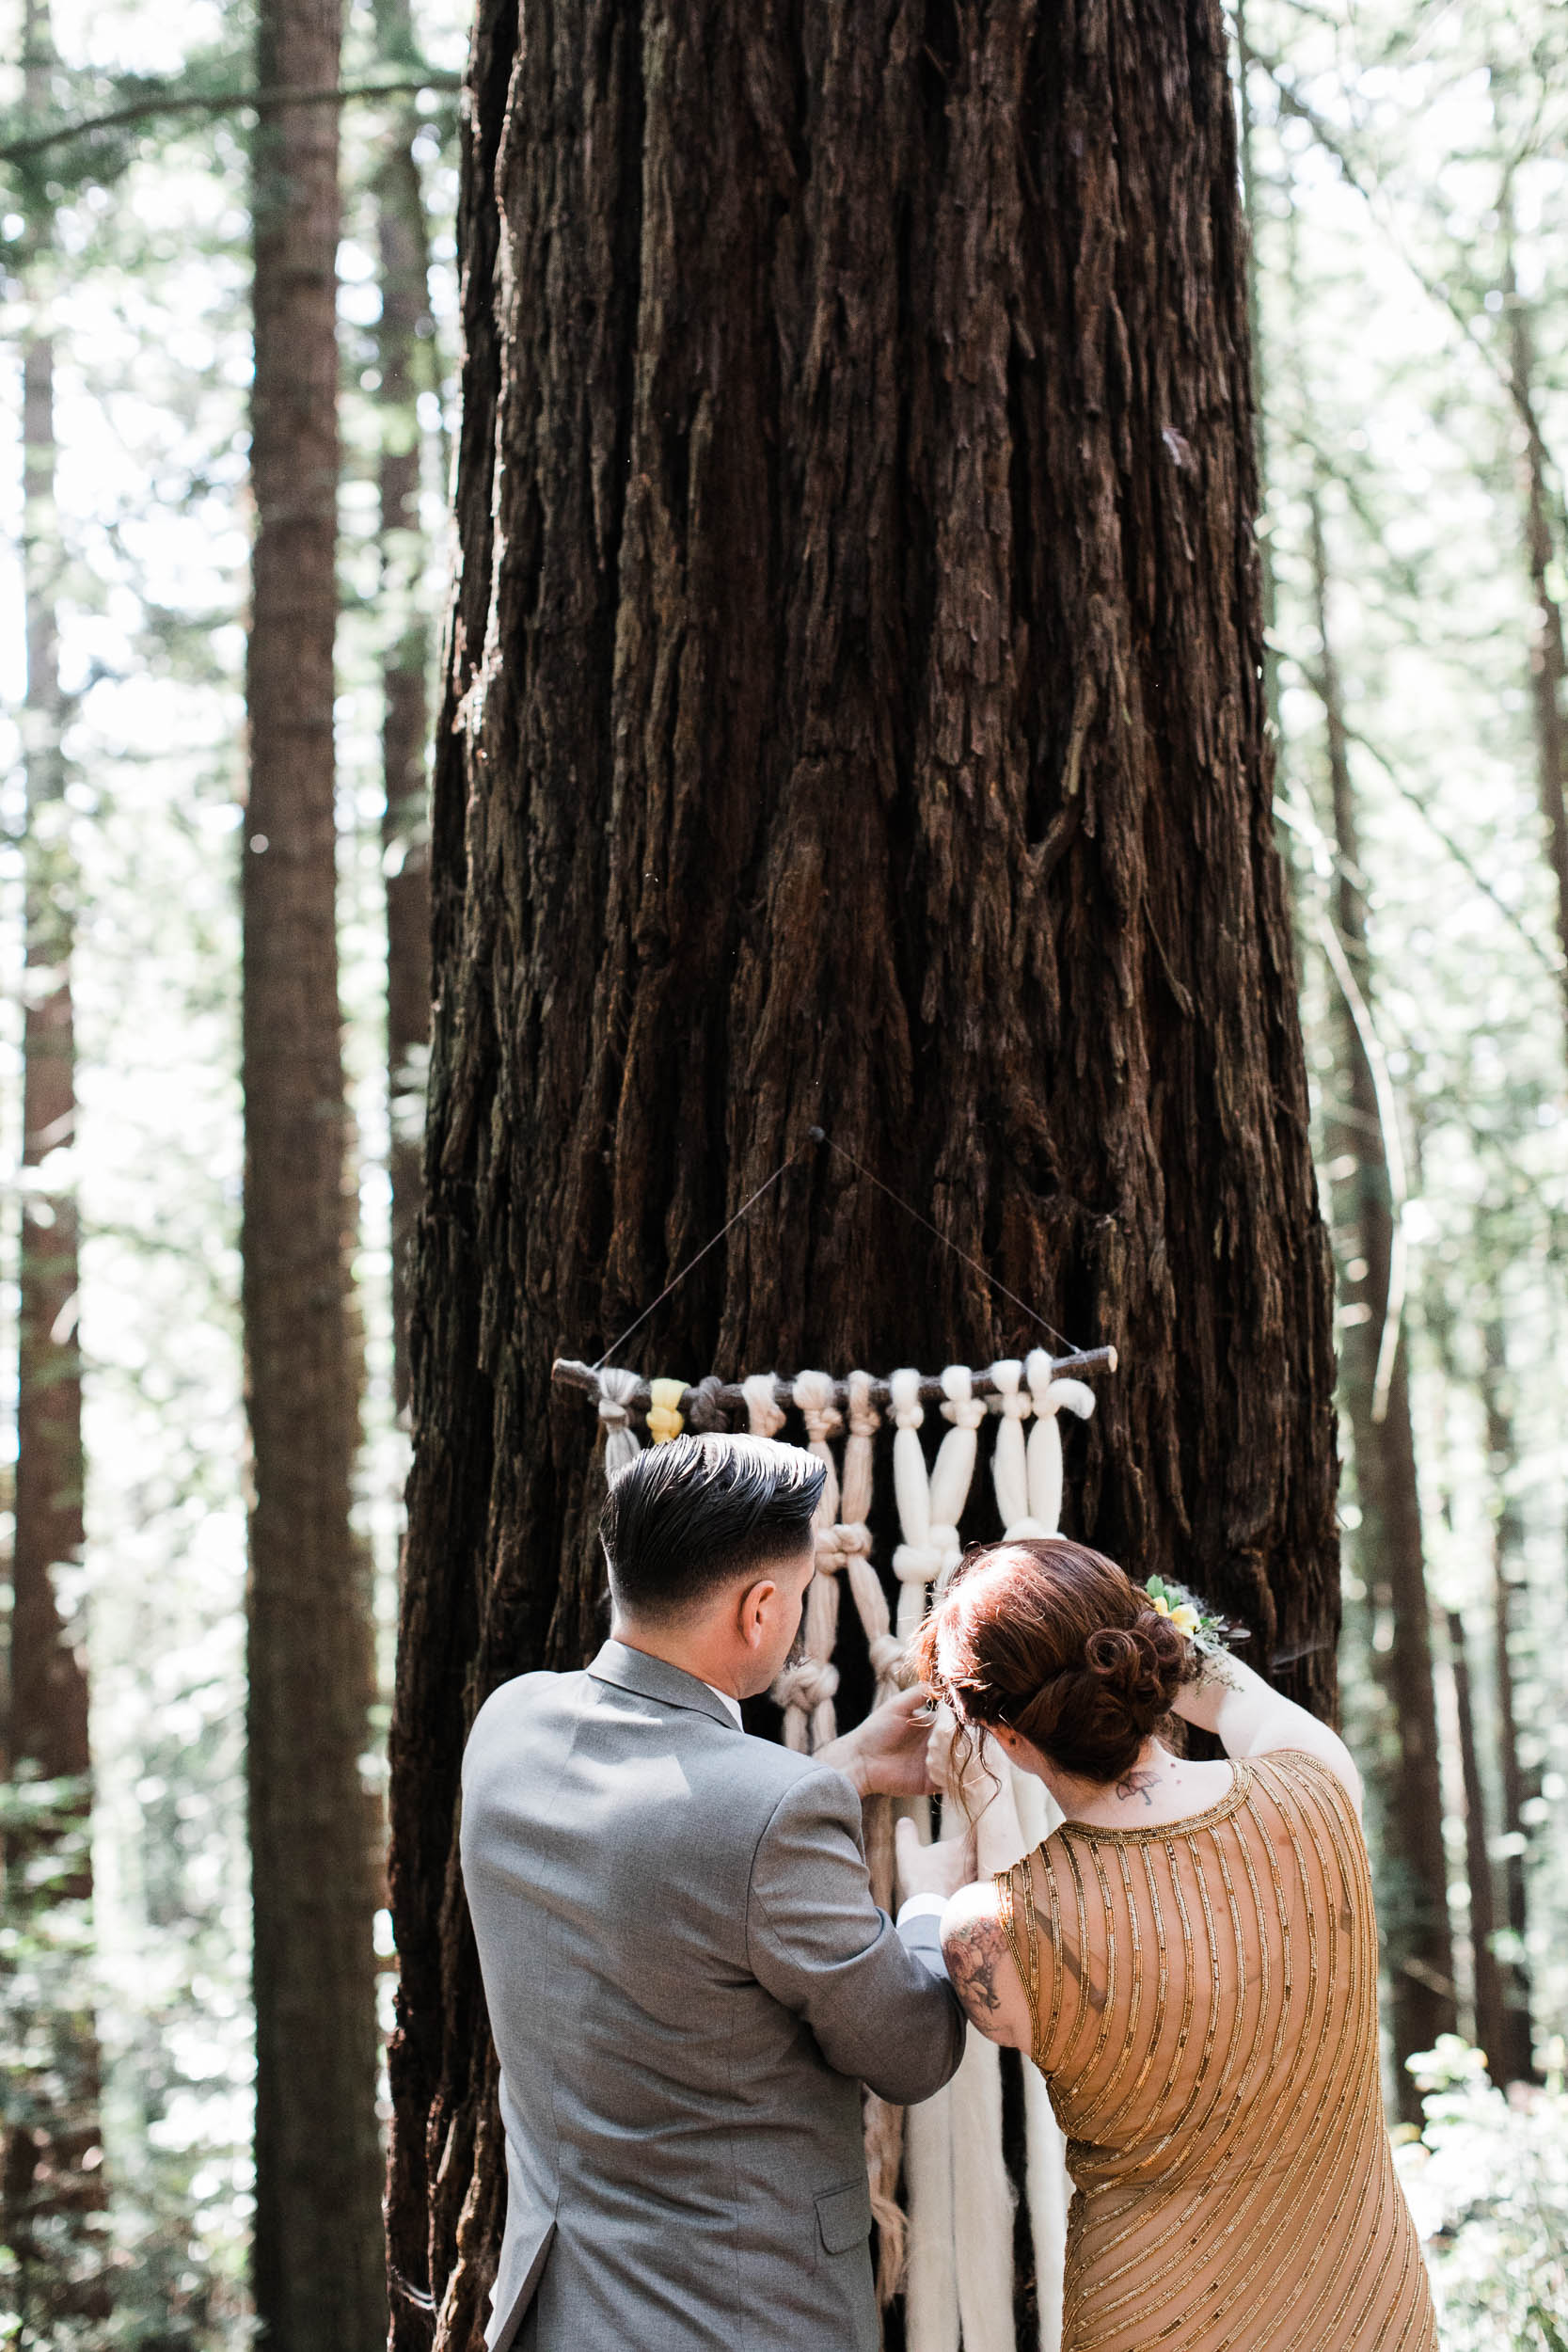 050418_J+S_Redwoods Elopement_Buena Lane Photography_0686.jpg